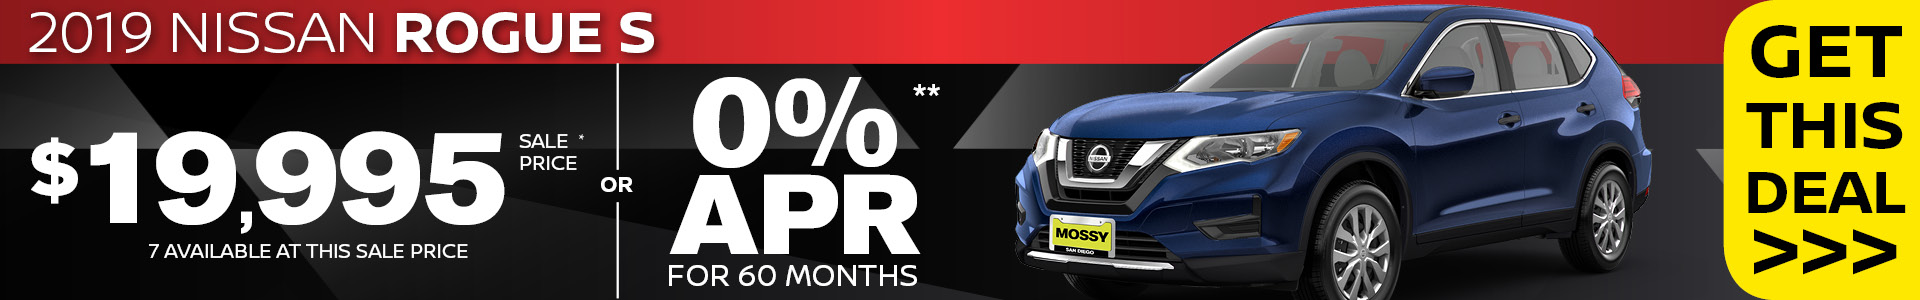 Mossy Nissan - Nissan Rogue $20,995 Purchase SRP